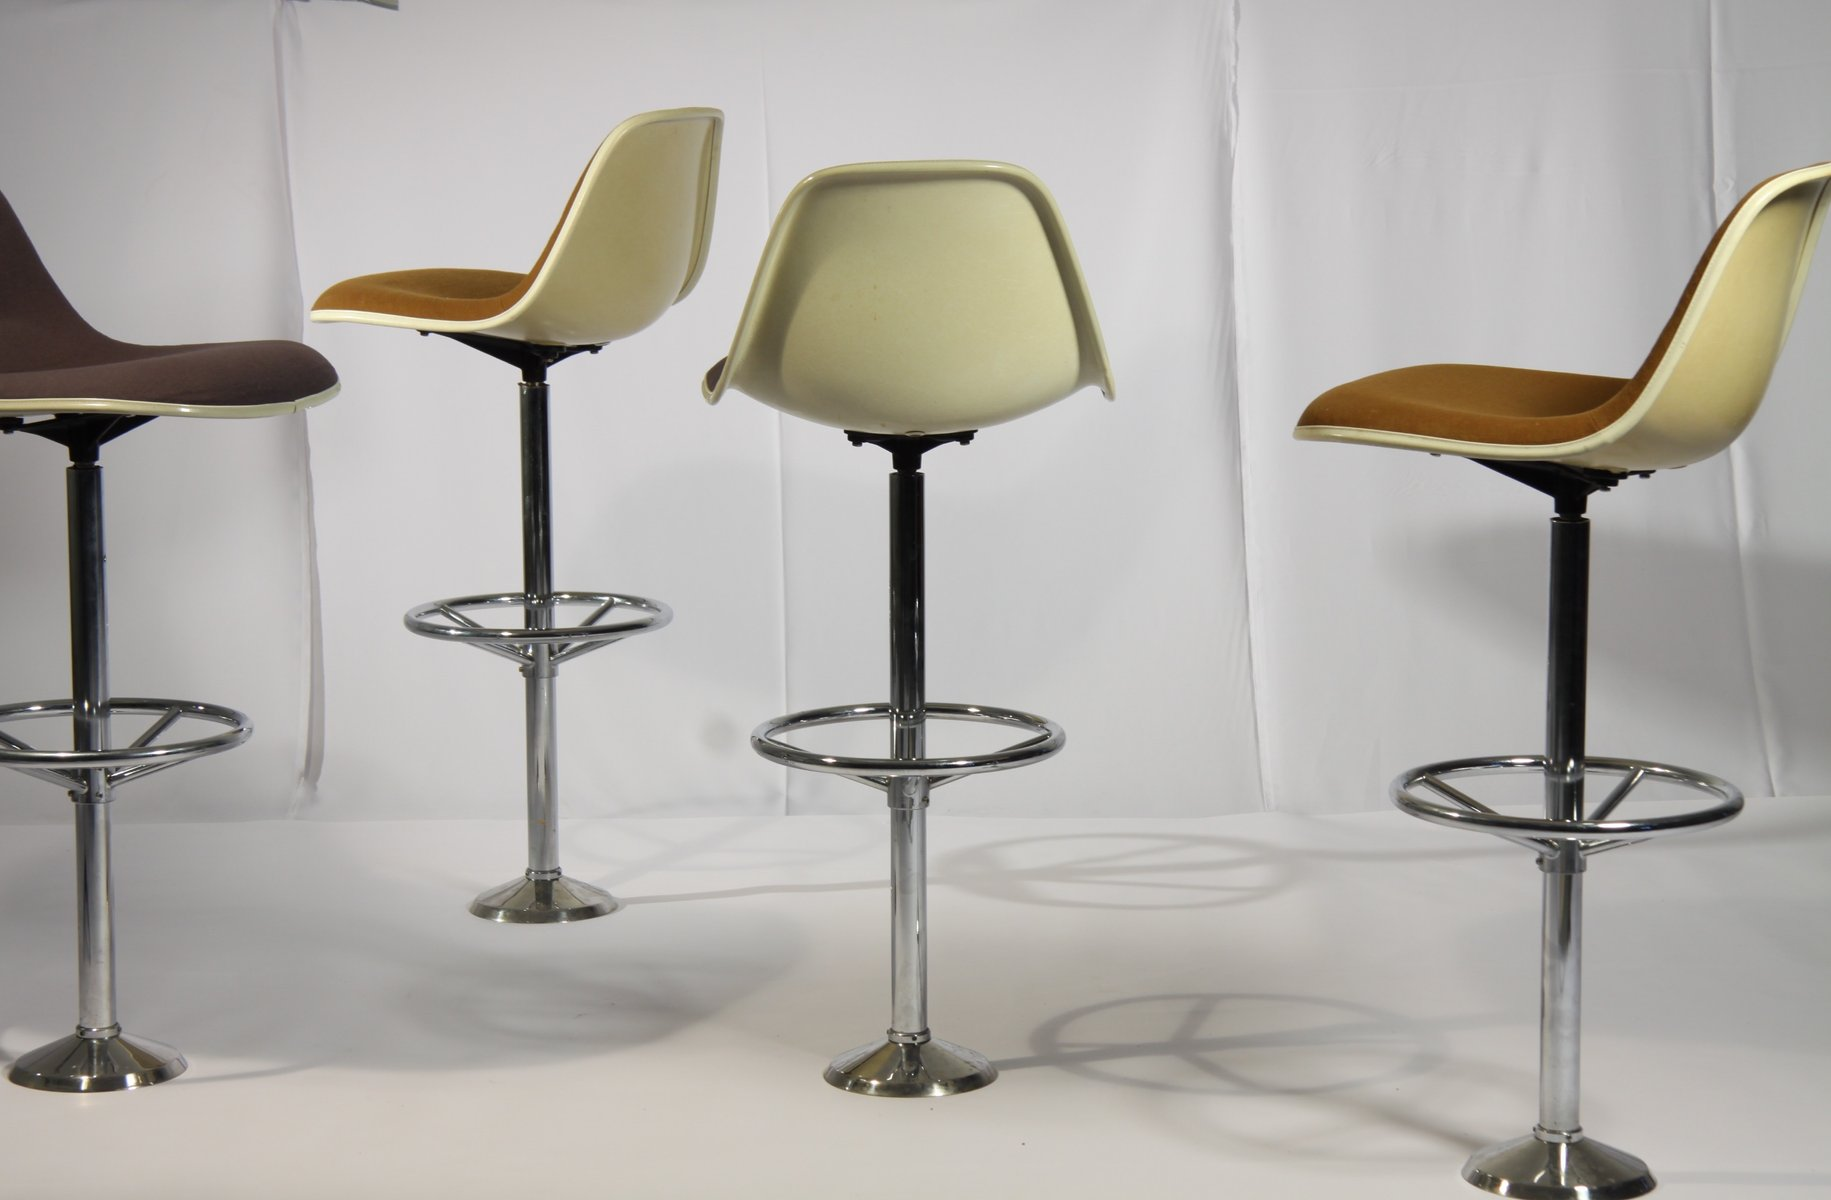 vintage bar stools by ray  charles eames for herman miller set  - vintage bar stools by ray  charles eames for herman miller set of